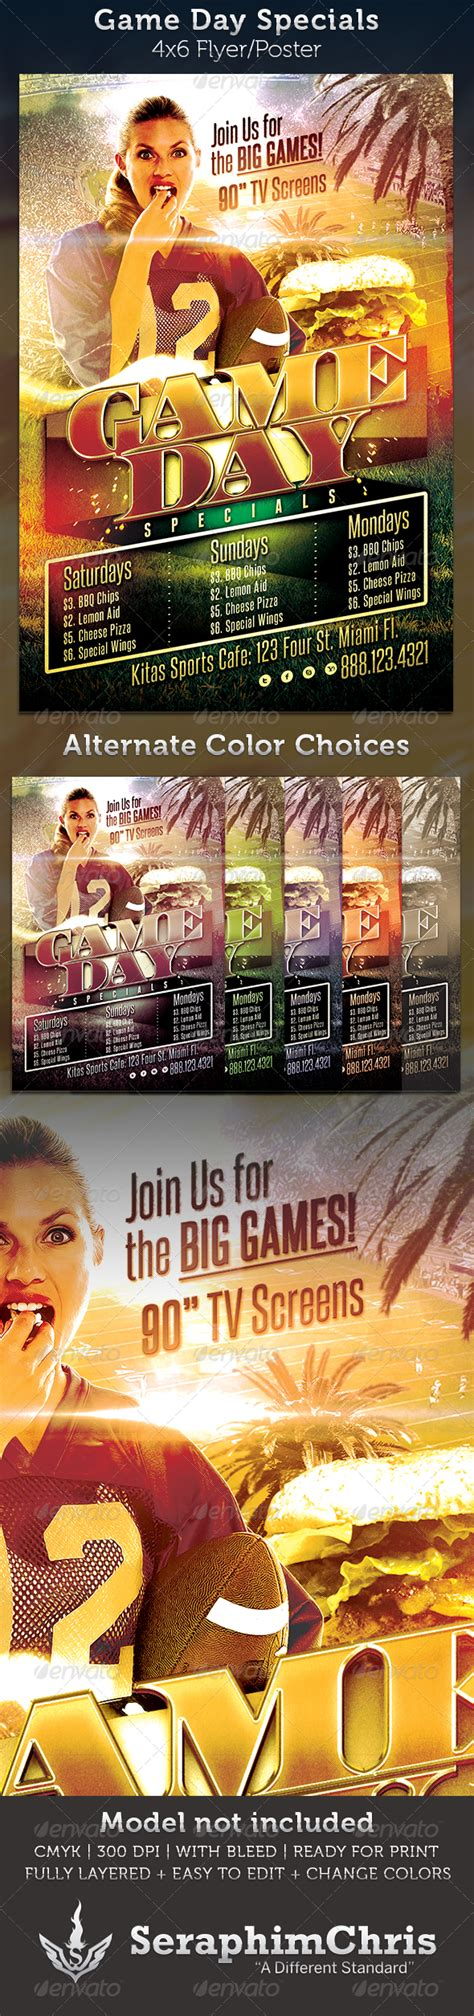 Tailgate Party Flyer Template 187 Tinkytyler Org Stock Photos Graphics Specials Flyer Template